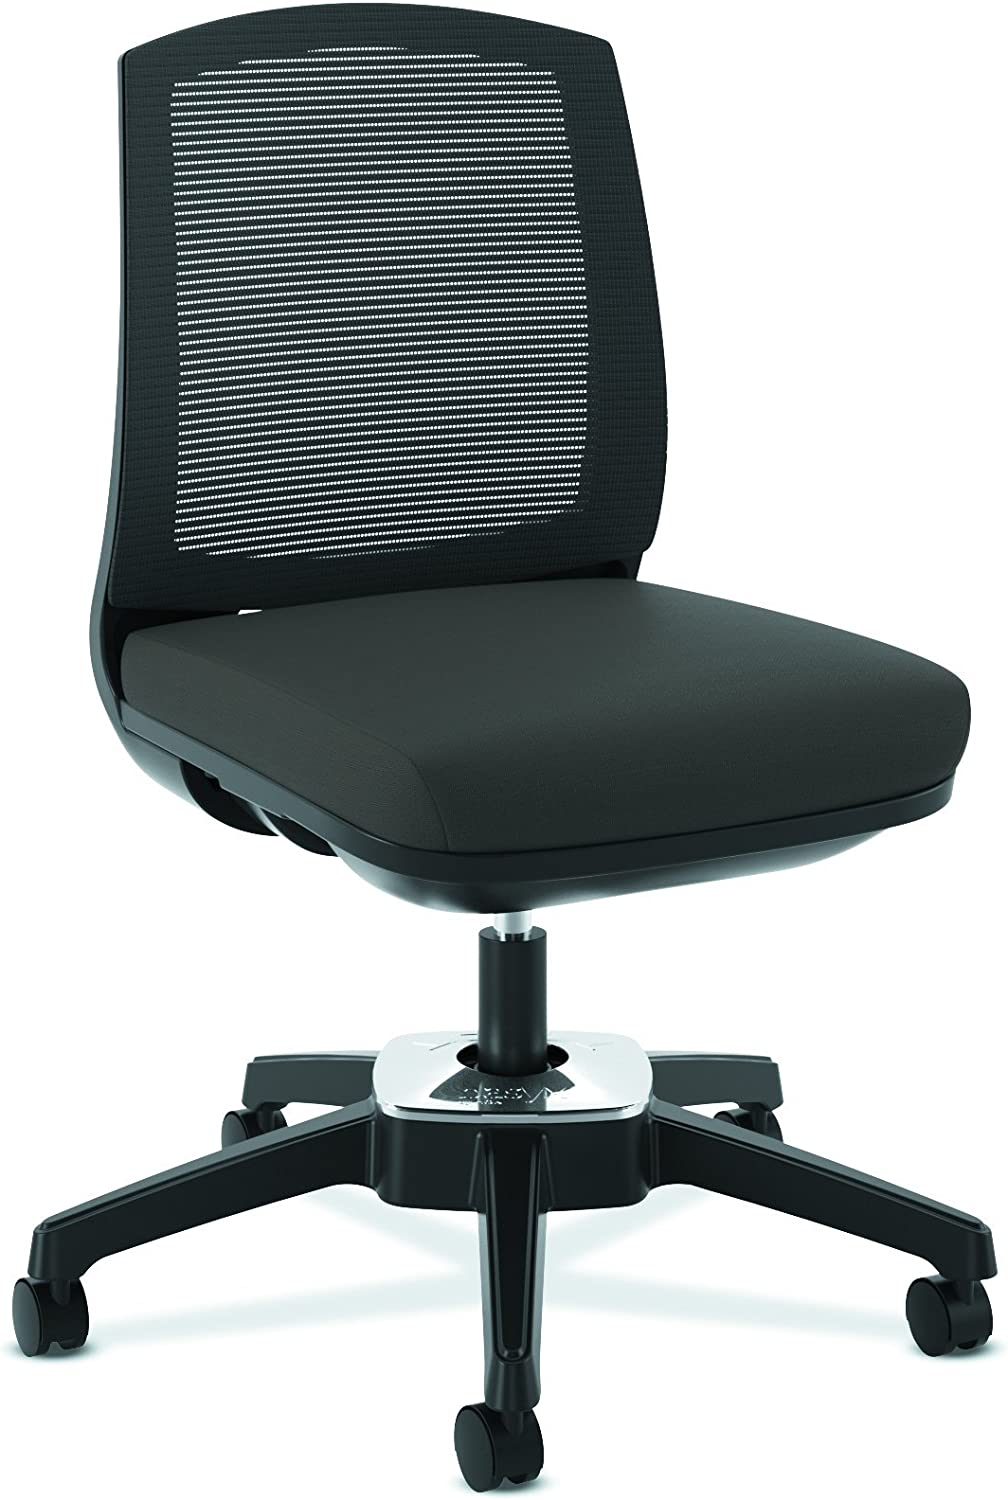 HON Active Task Chair - Armless Computer Chair for Office Desk, Black Mesh  (HVL4)